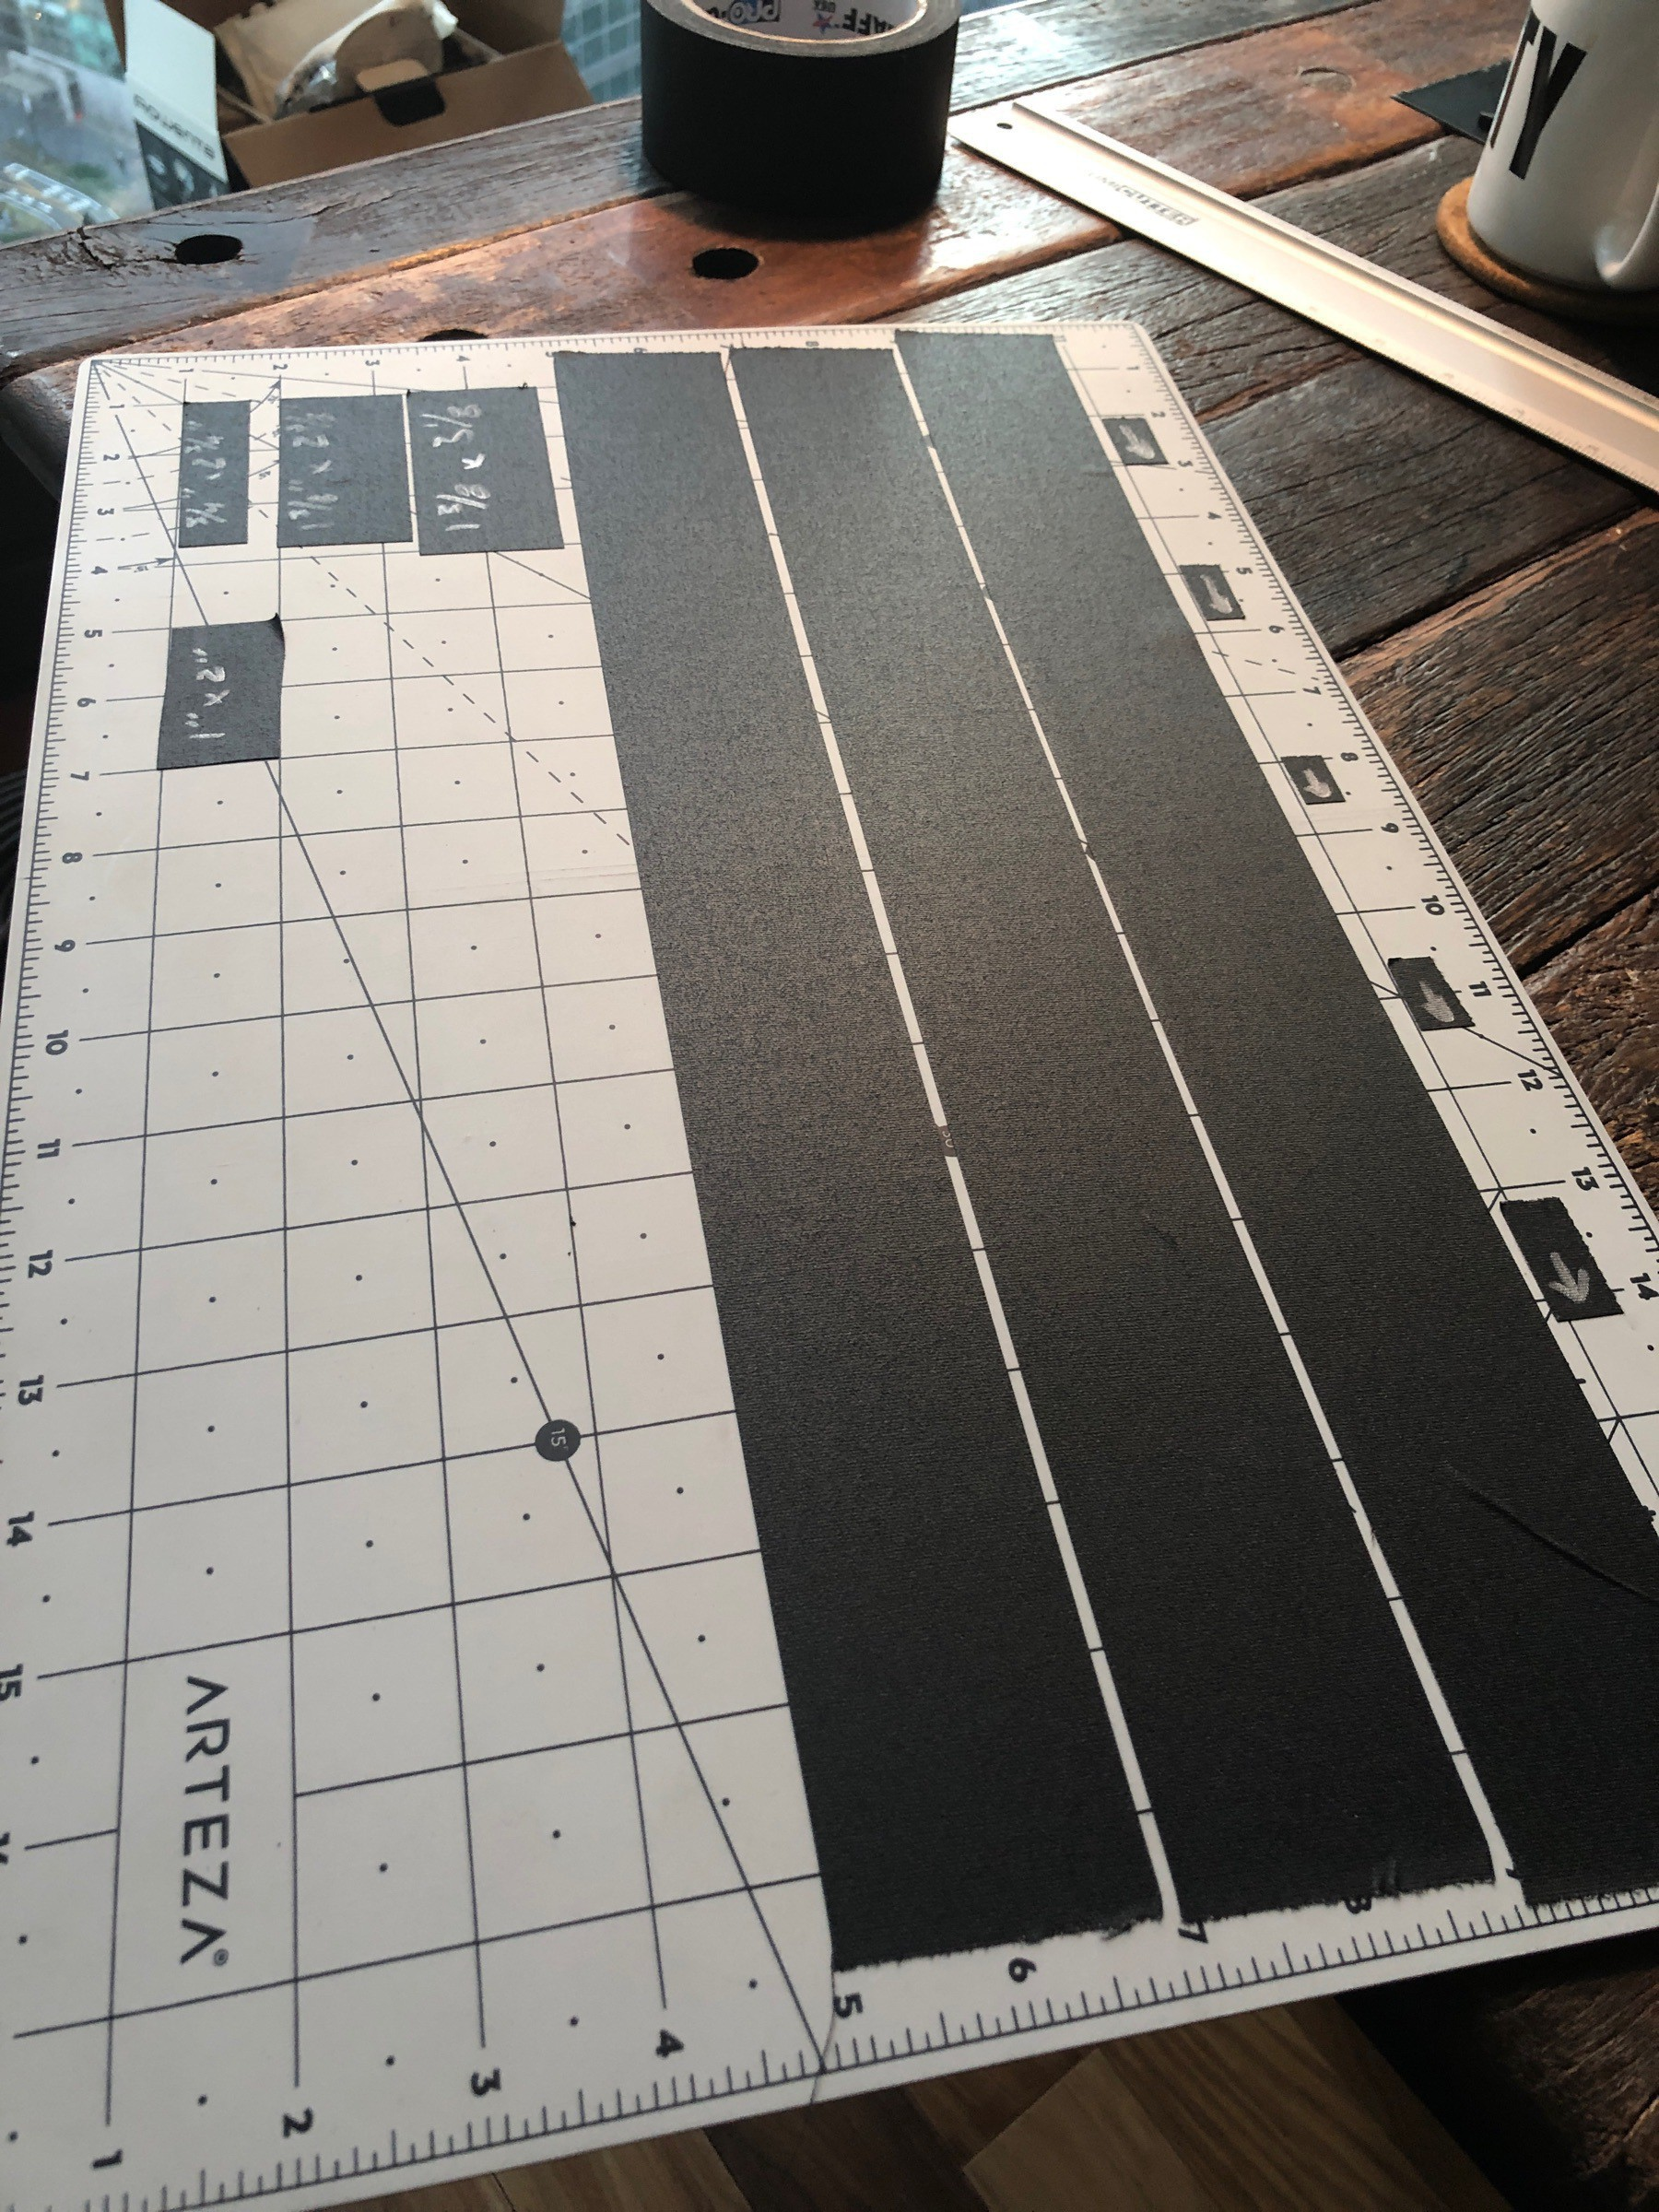 Cutting mat with several strips of black gaffers tape.